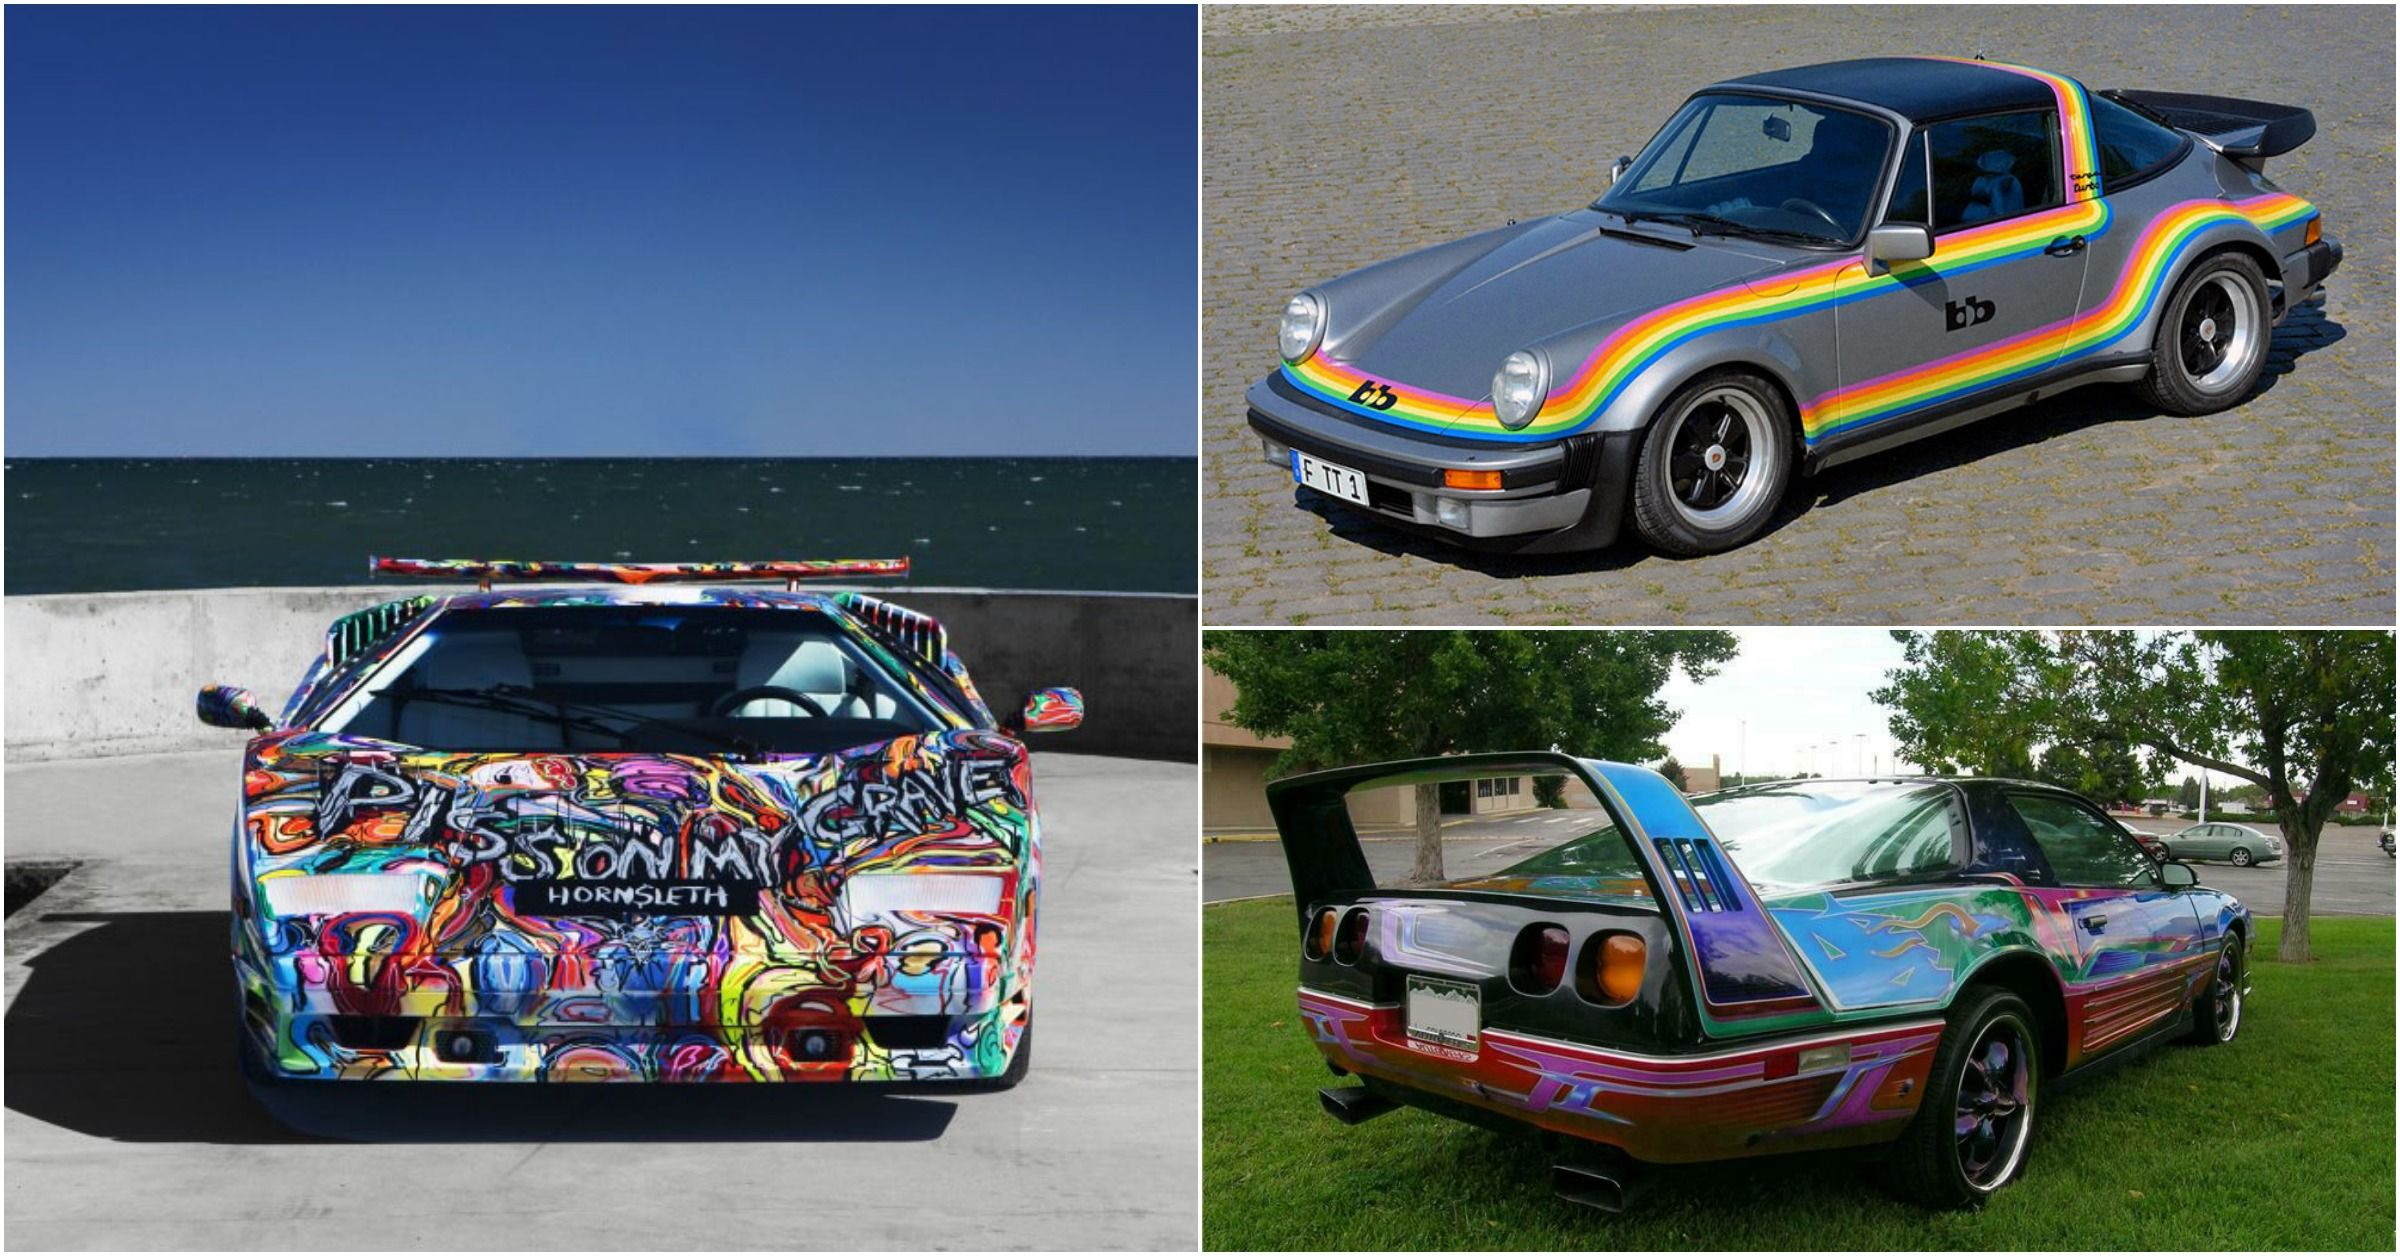 14 Greatest Classic Cars Of The 80s Ruined With Bad Paint Jobs